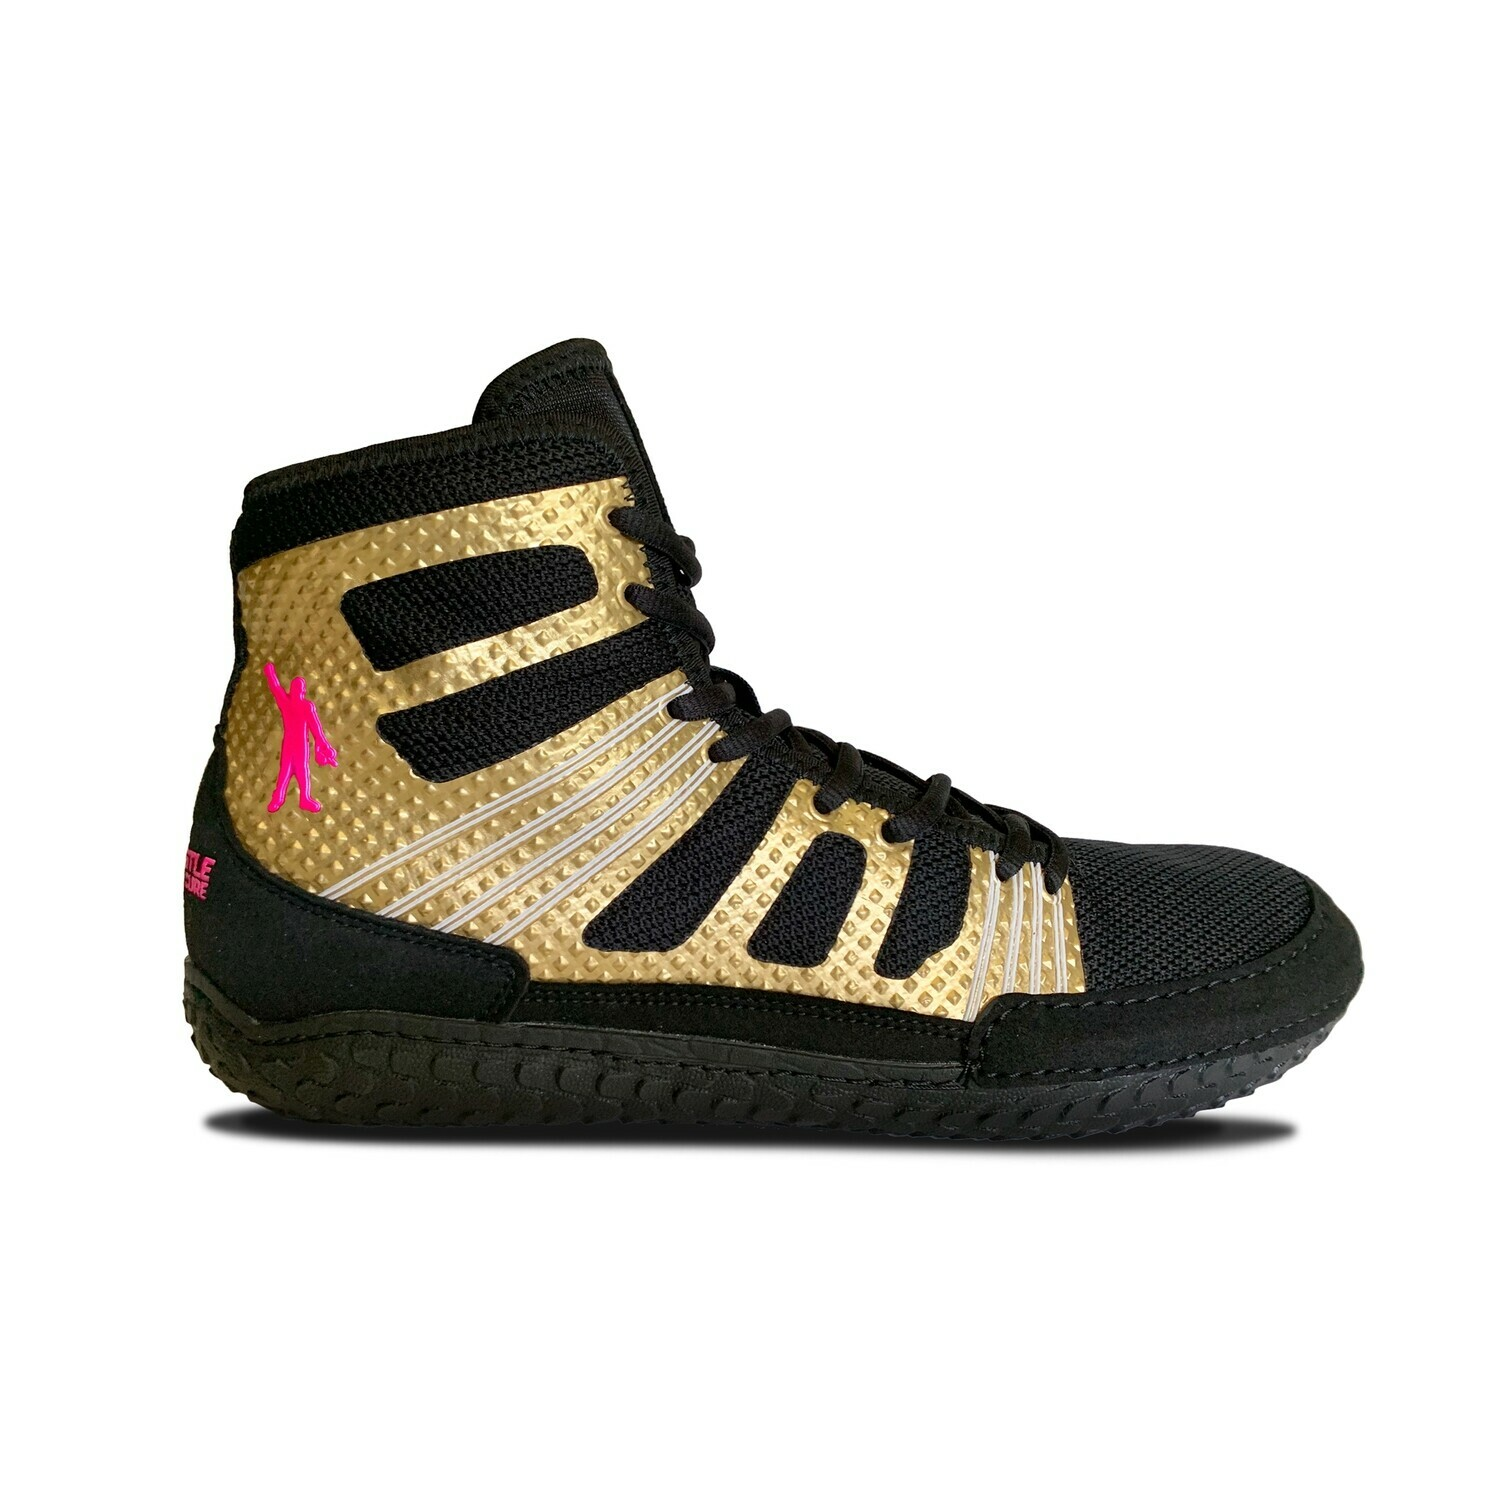 TG Predator - Pin Cancer™ Gold Edition Wrestling Shoe goldpredator